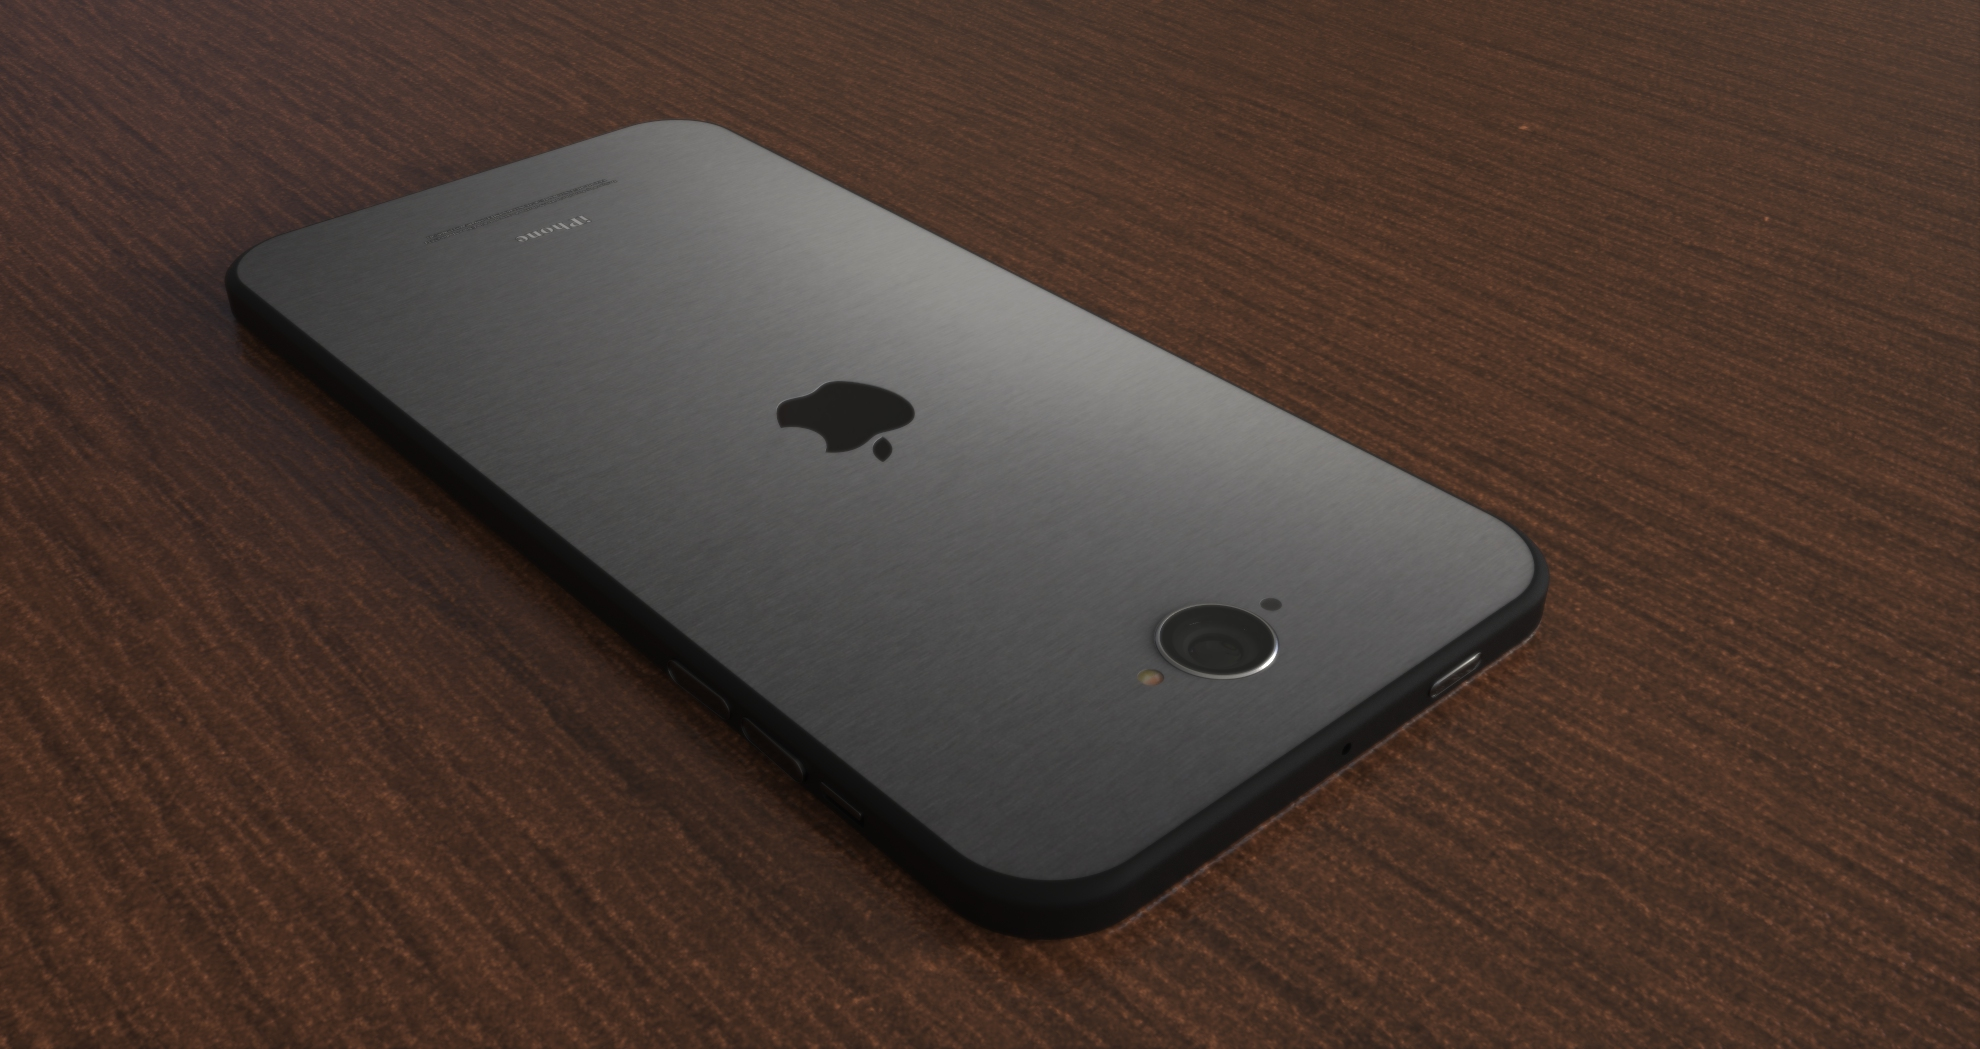 Apple-iPhone-6s-concept-render-2